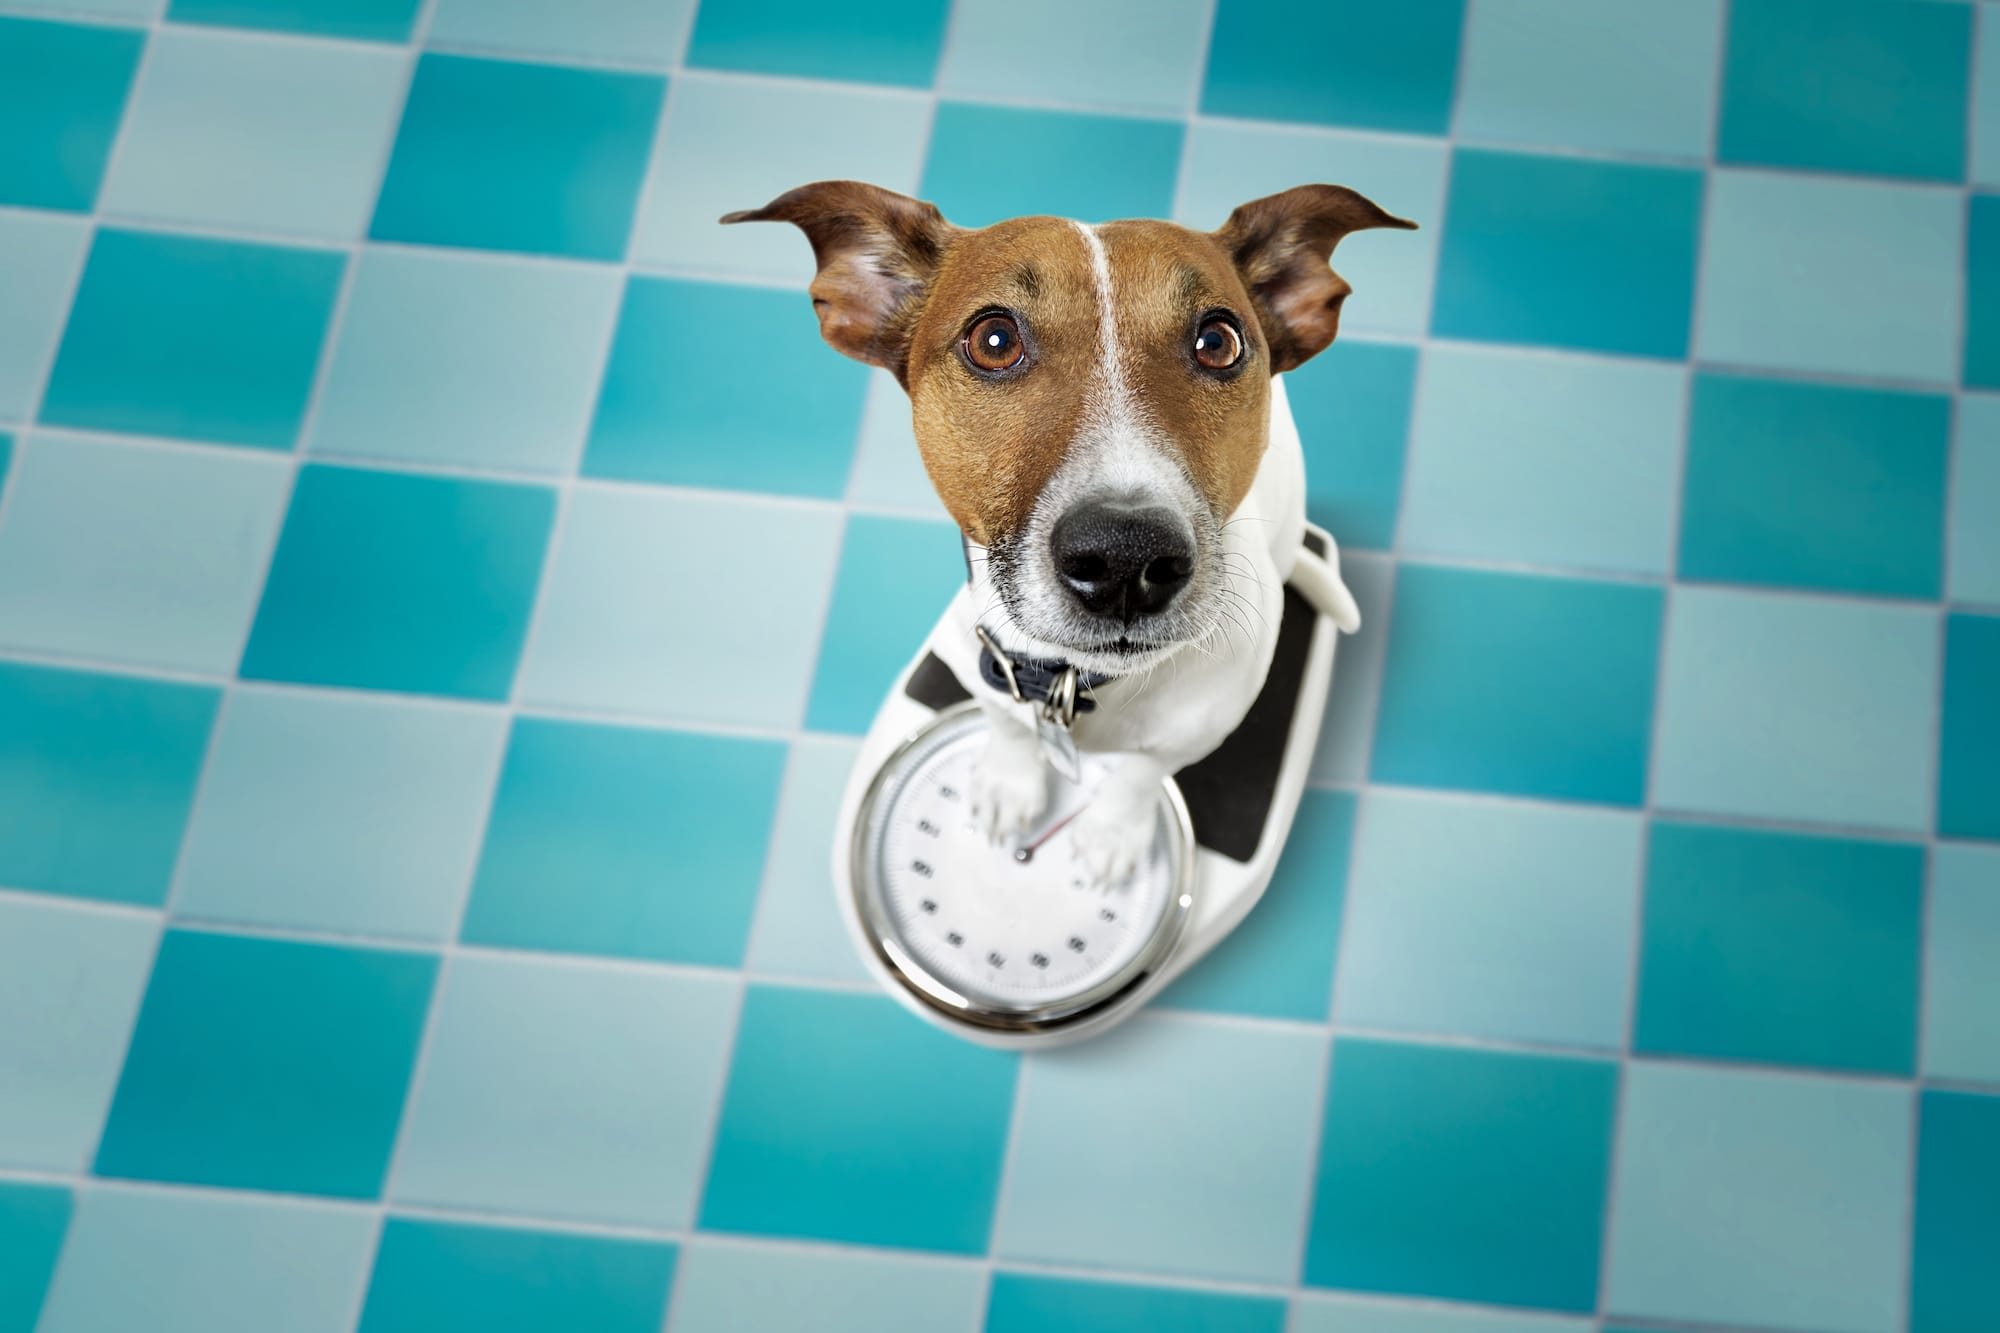 5 tips on how to help your dog lose weight